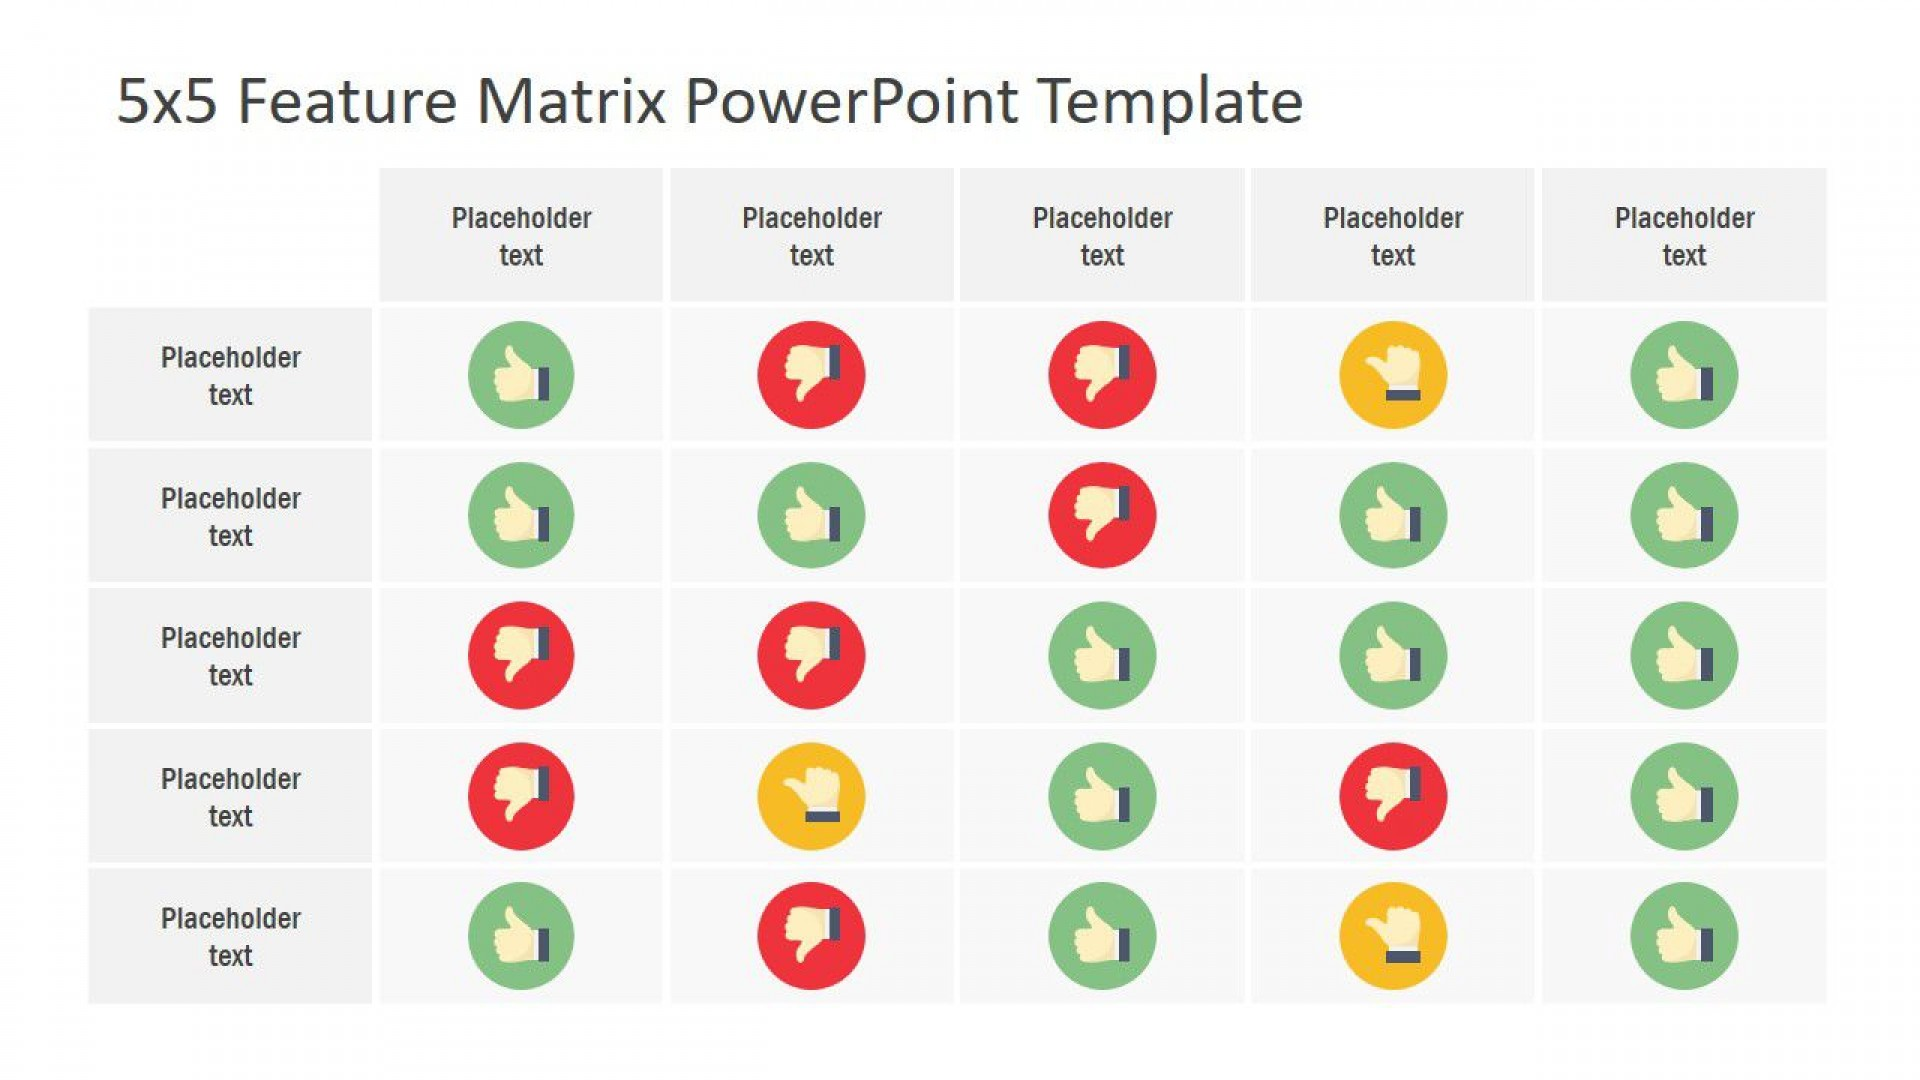 003 Staggering Role And Responsibilitie Matrix Template Powerpoint High Definition 1920